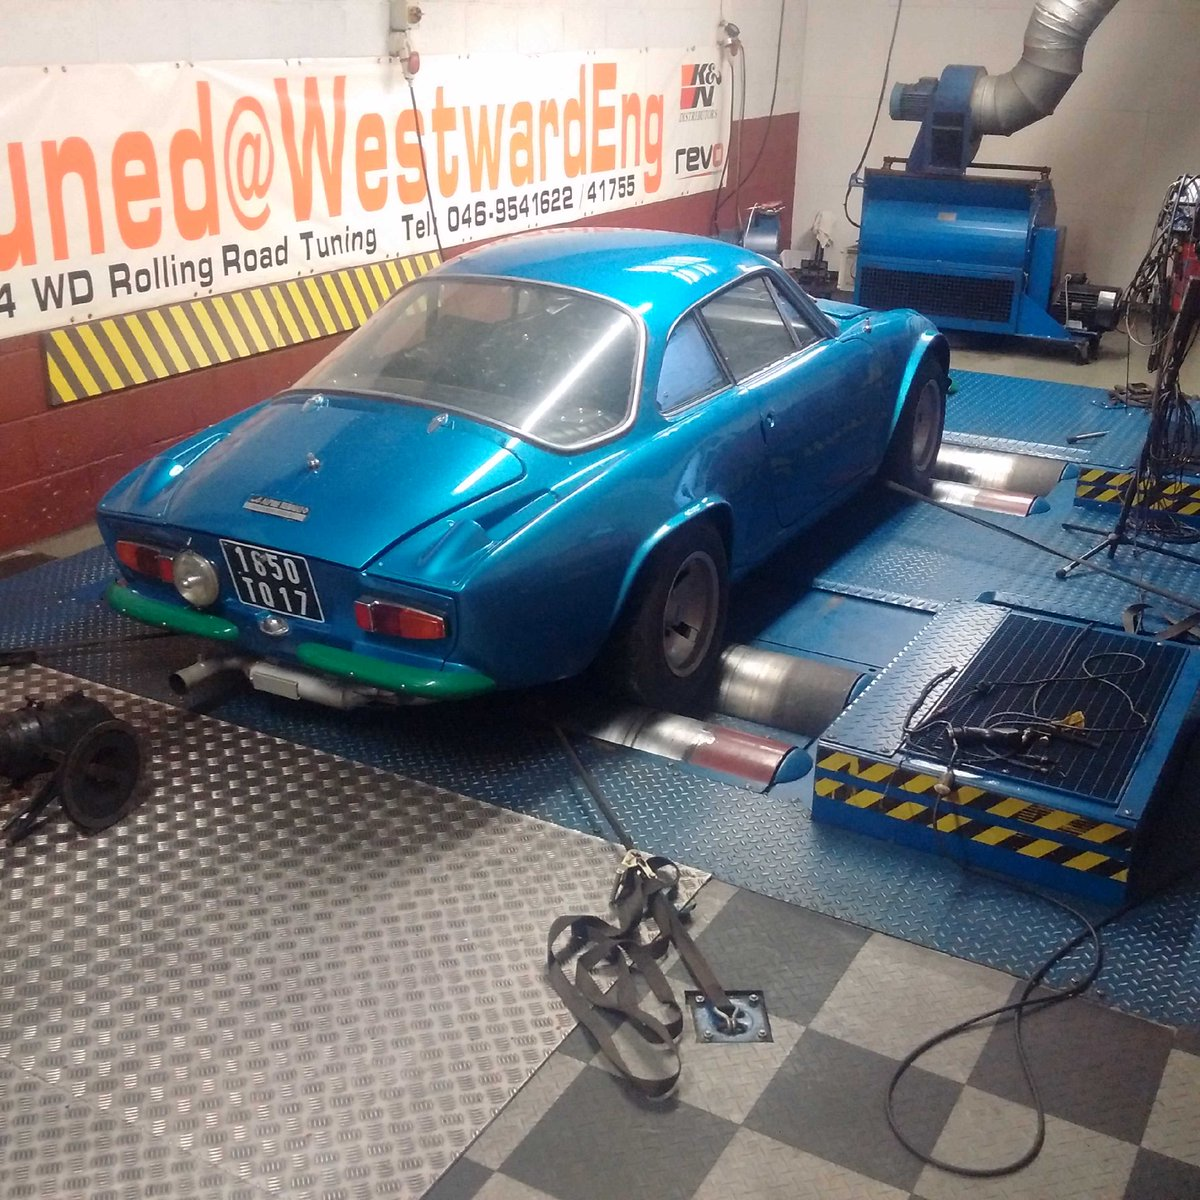 Westward Engineering On Twitter Lovely Renault Alpine For Calibrating Alpine Renault Gordini